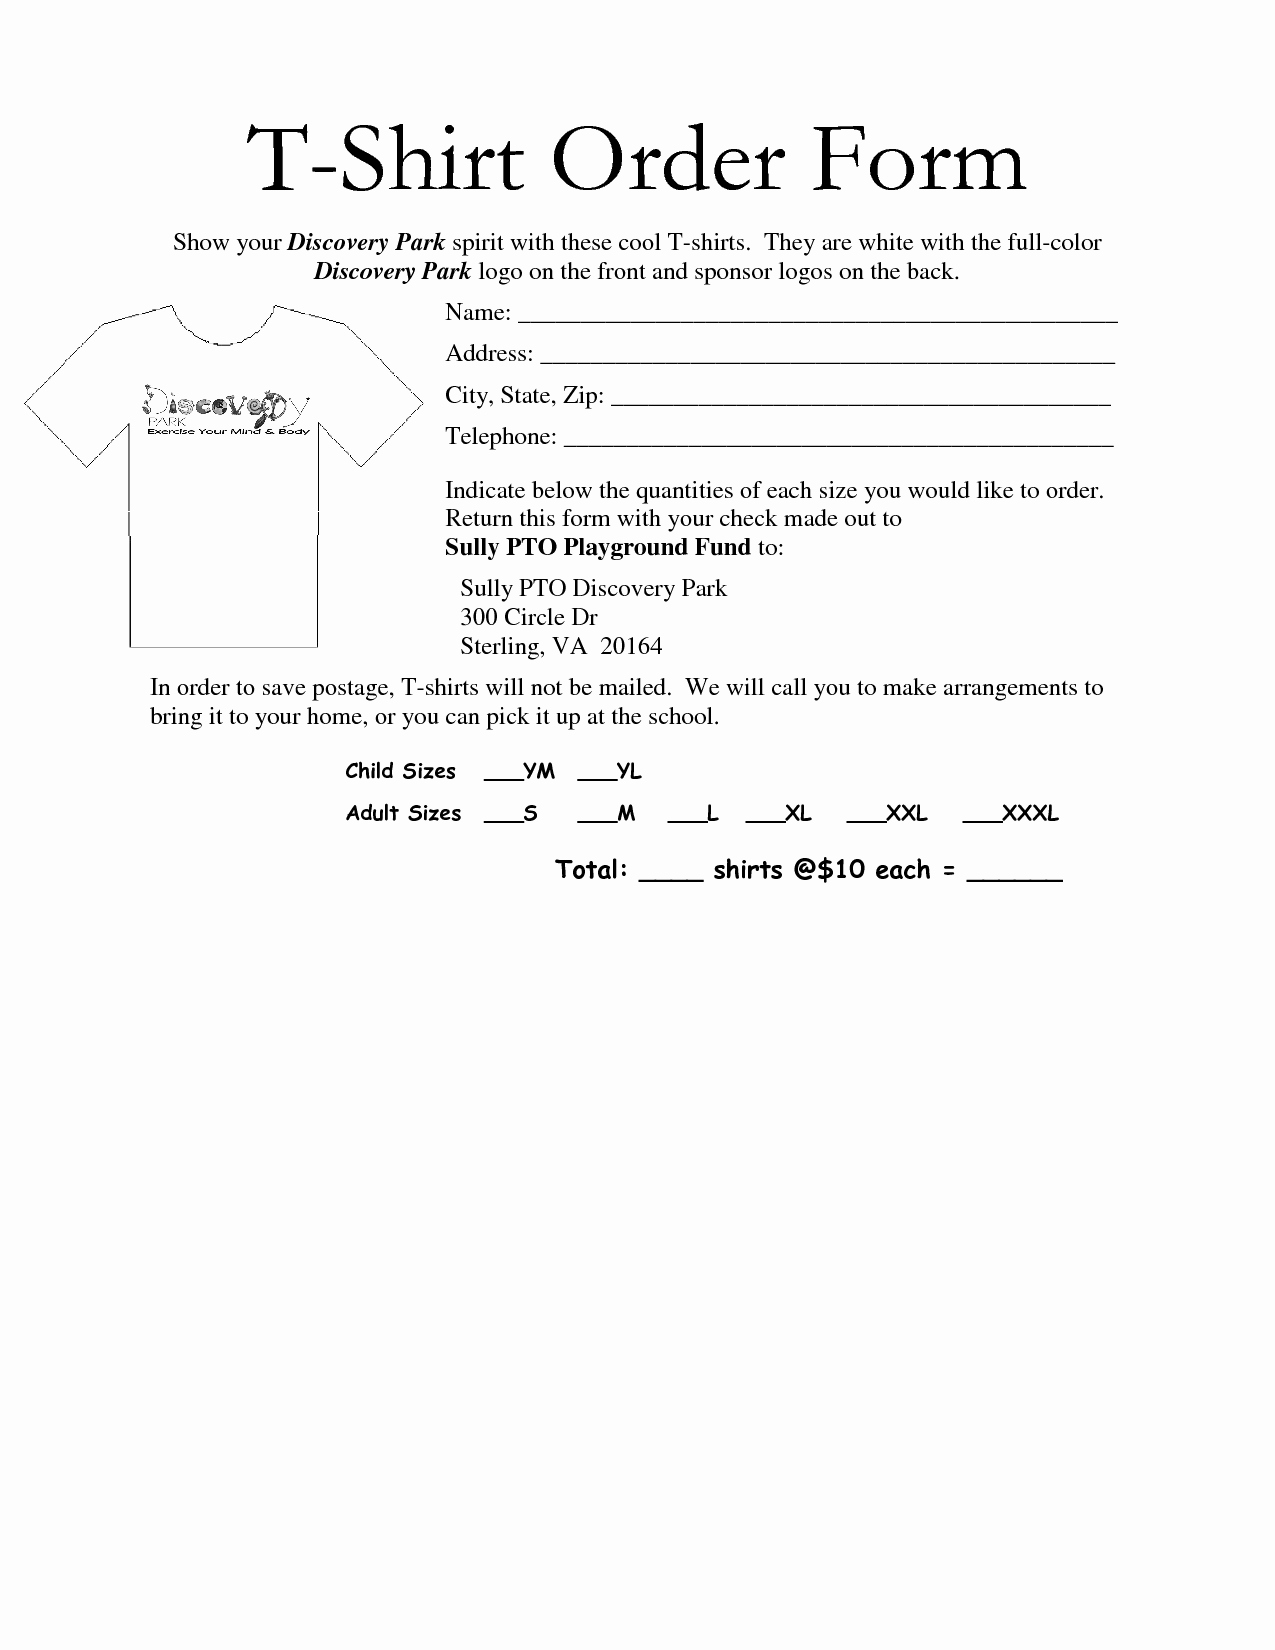 Shirt order form Template New 35 Awesome T Shirt order form Template Free Images